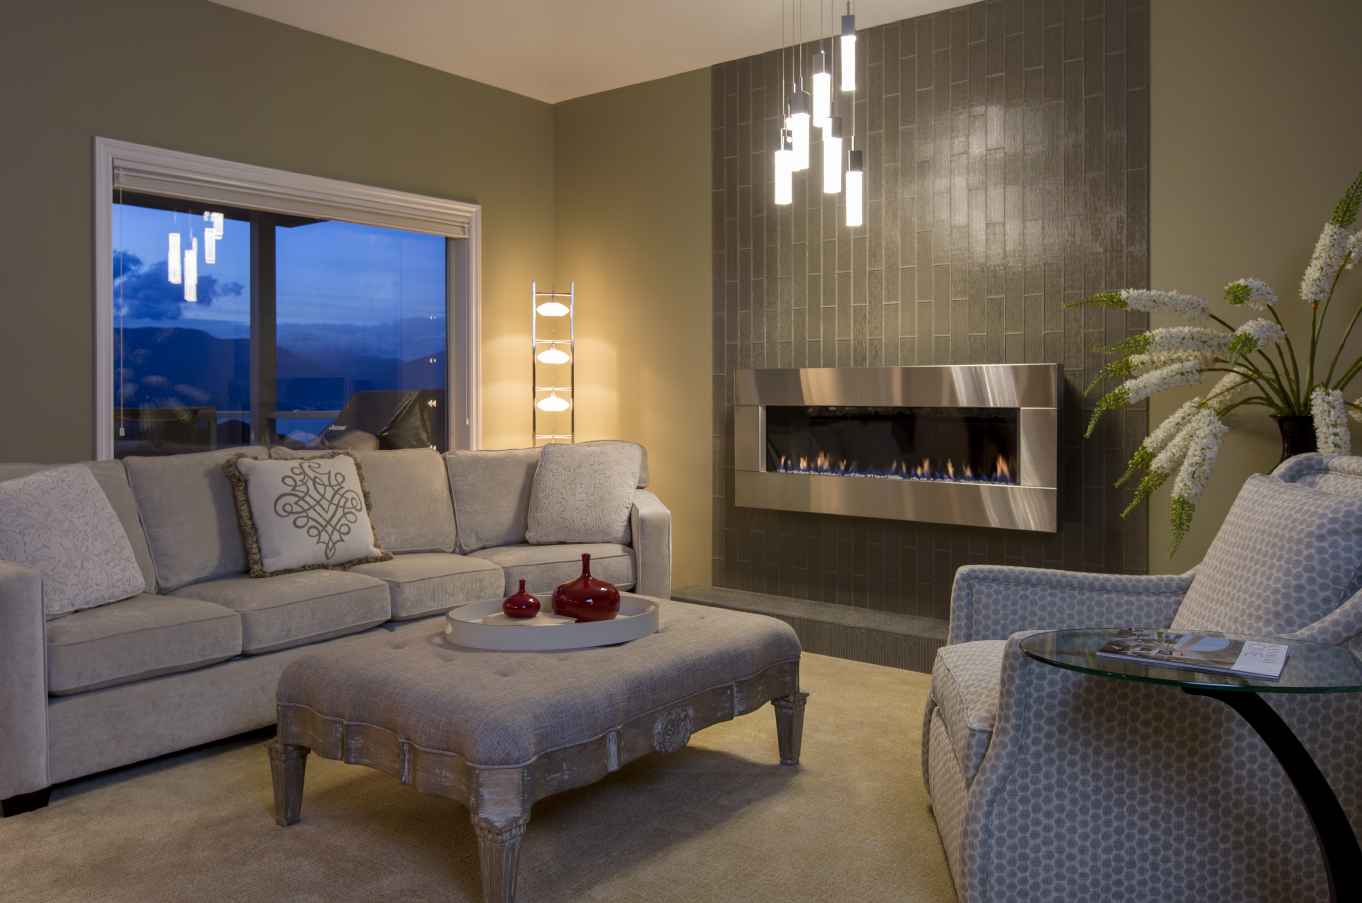 after livingroom creative touch kelowna interior design interior design kelowna full home design creative touch,Full Home Design